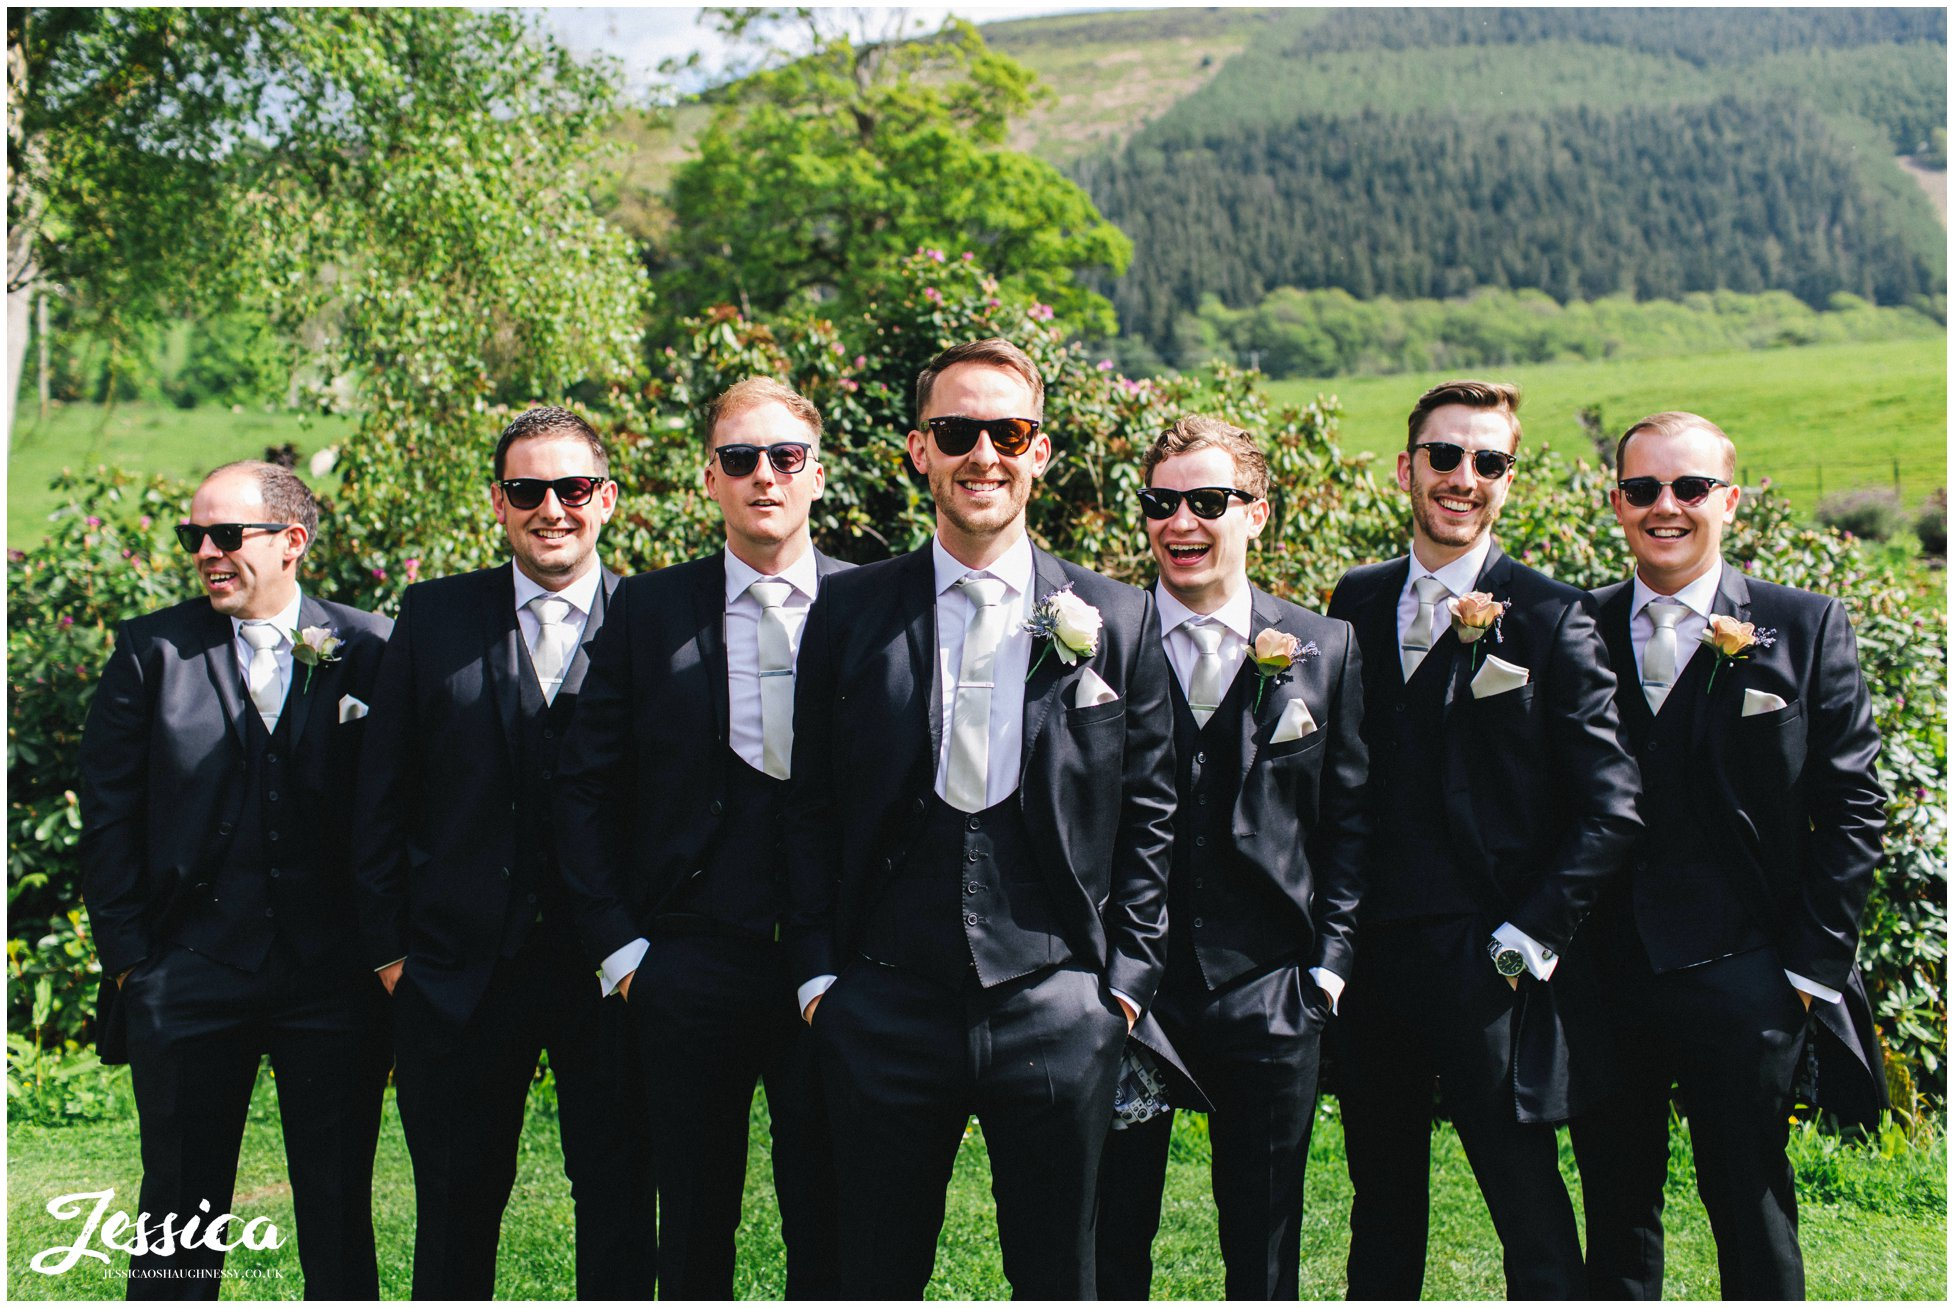 groom & groomsmen pose with sunglasses